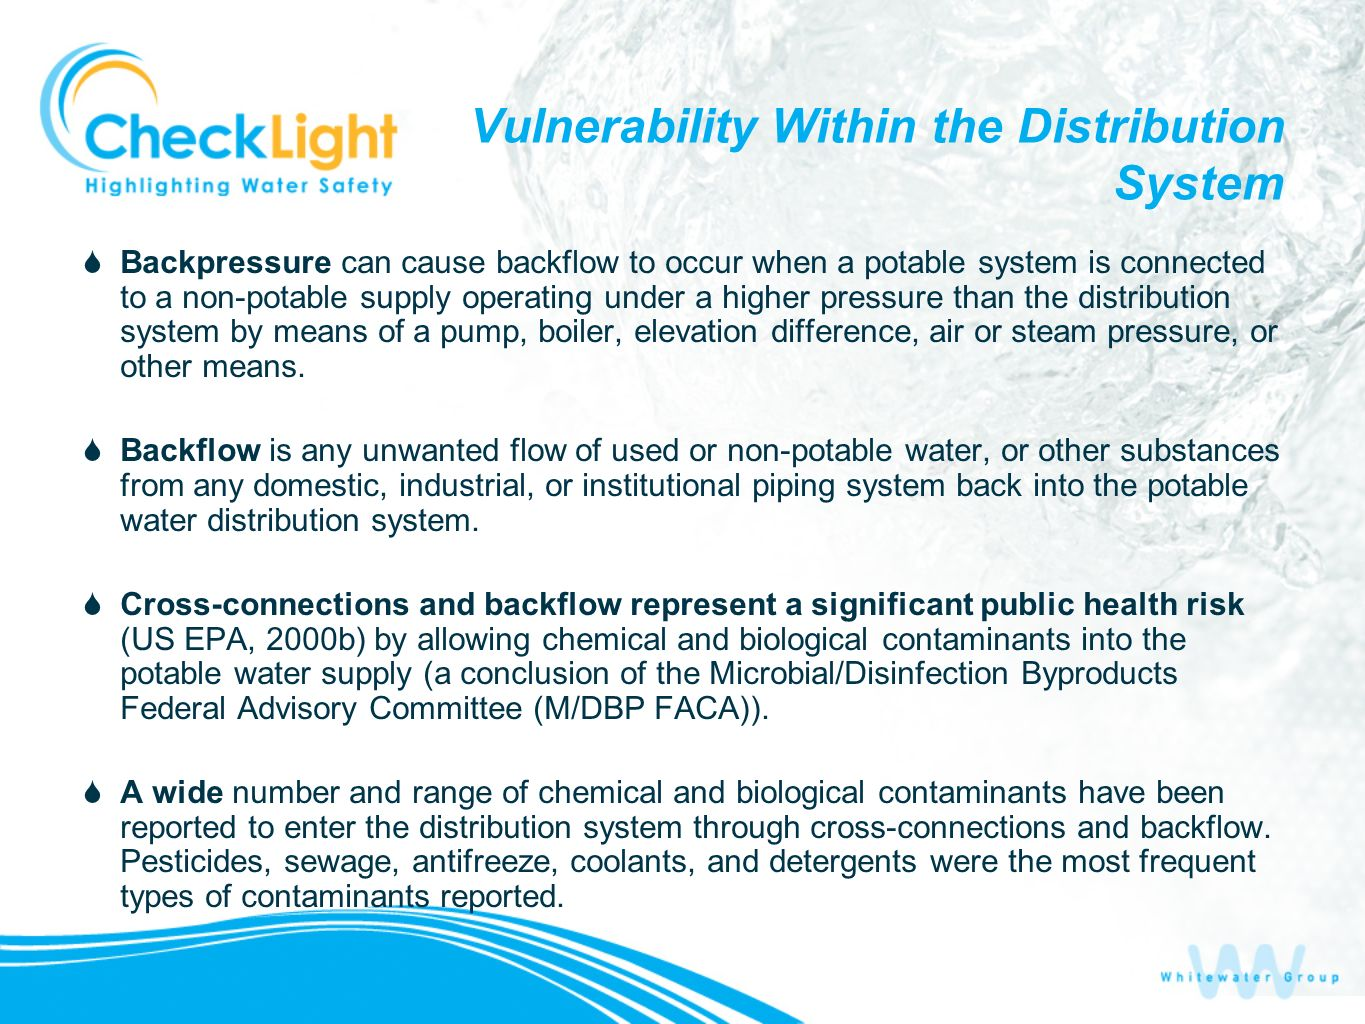 Vulnerability Within the Distribution System